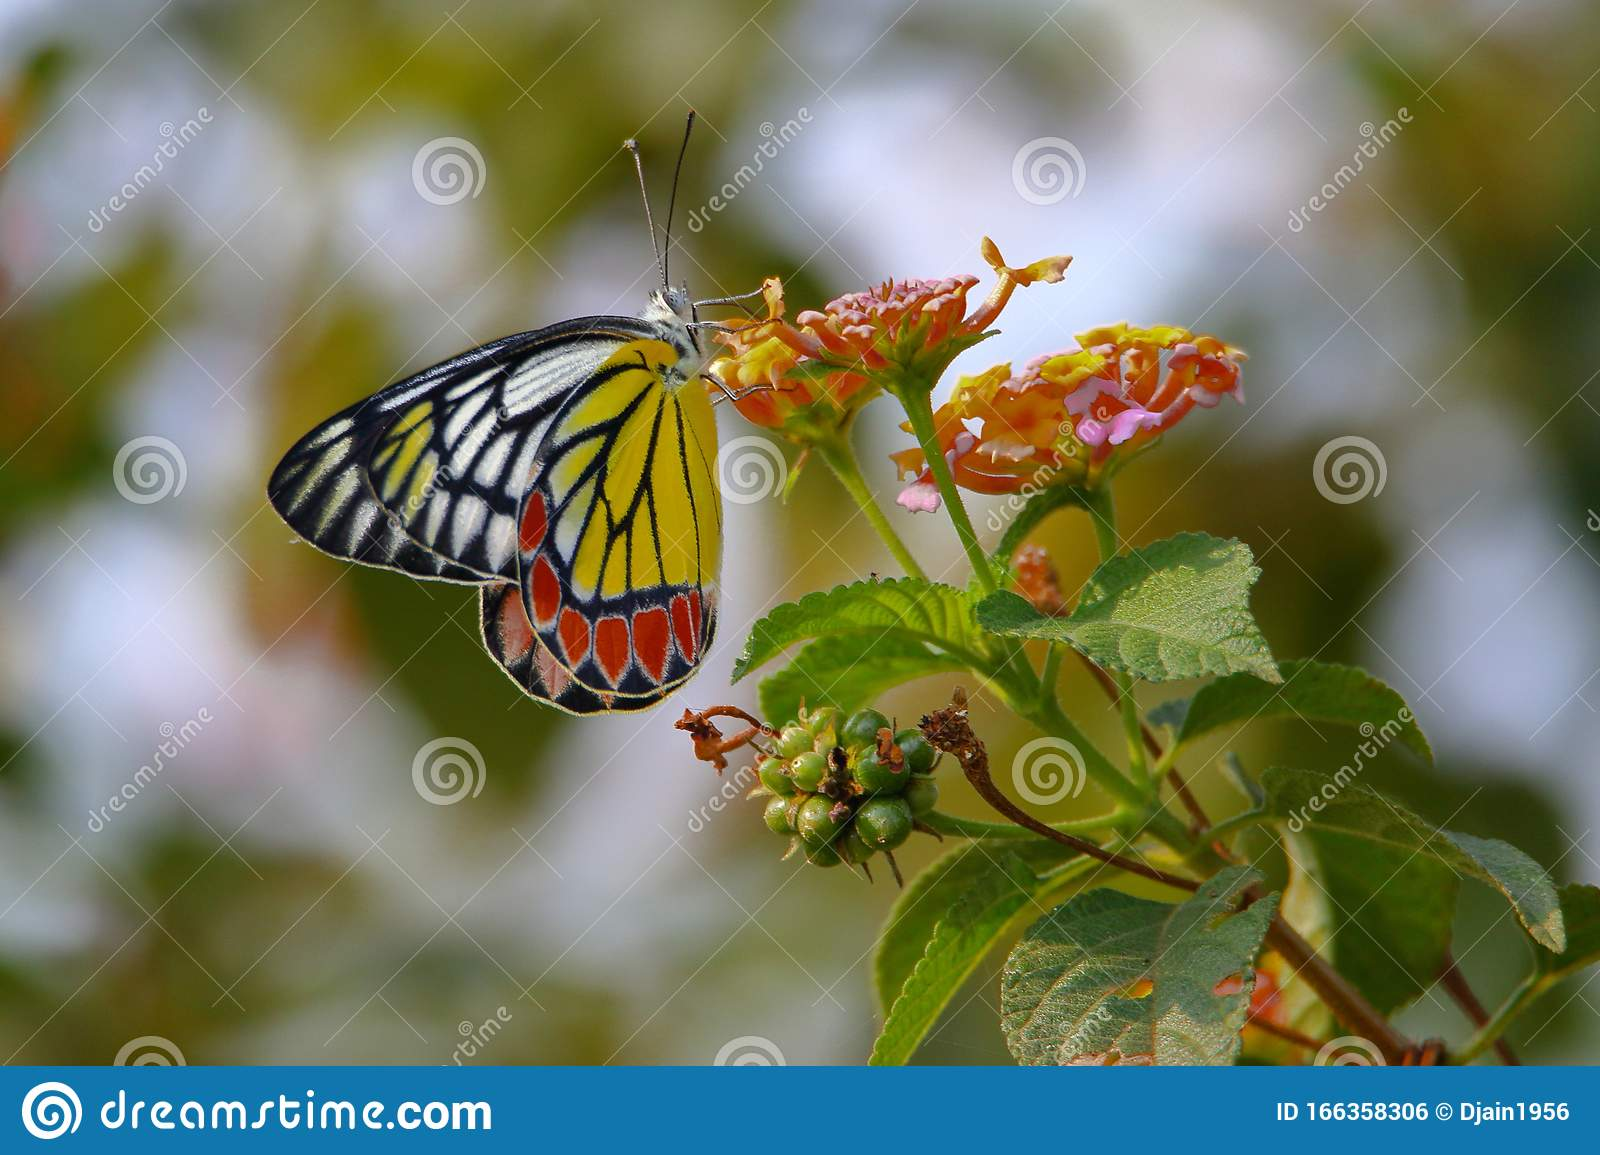 Butterfly Insects Natural Nature Wallpaper Stock Photo Image